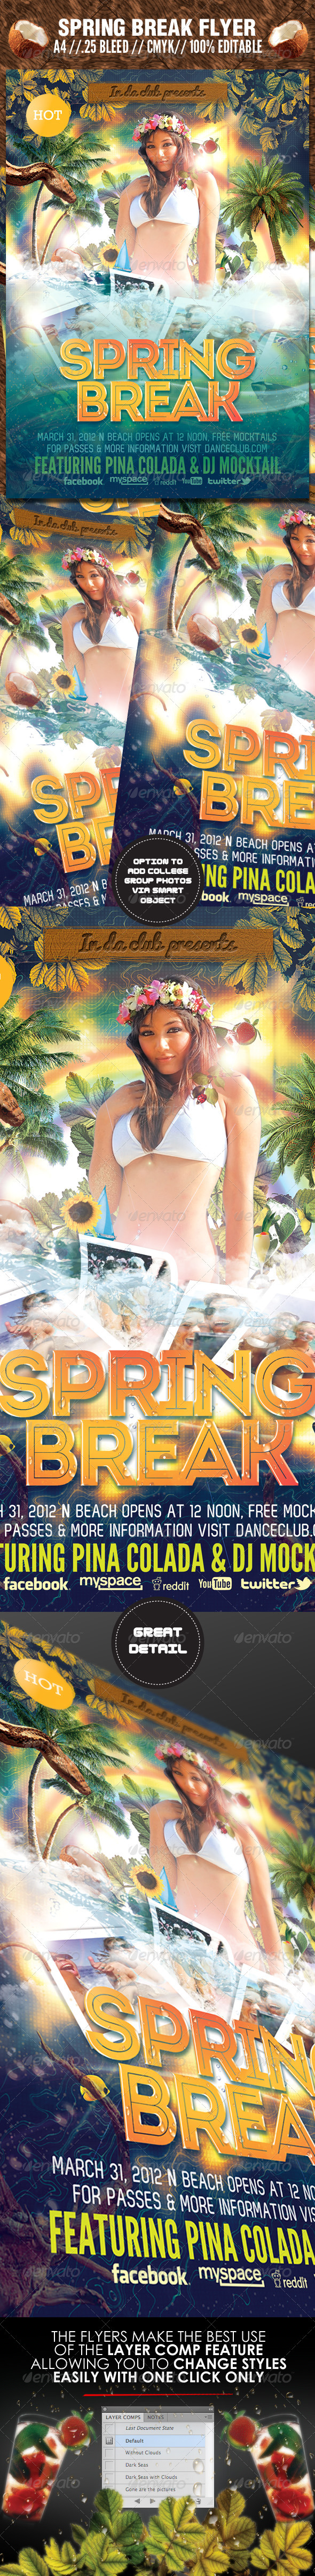 Spring Break and Beach Party Flyer Template - Clubs & Parties Events